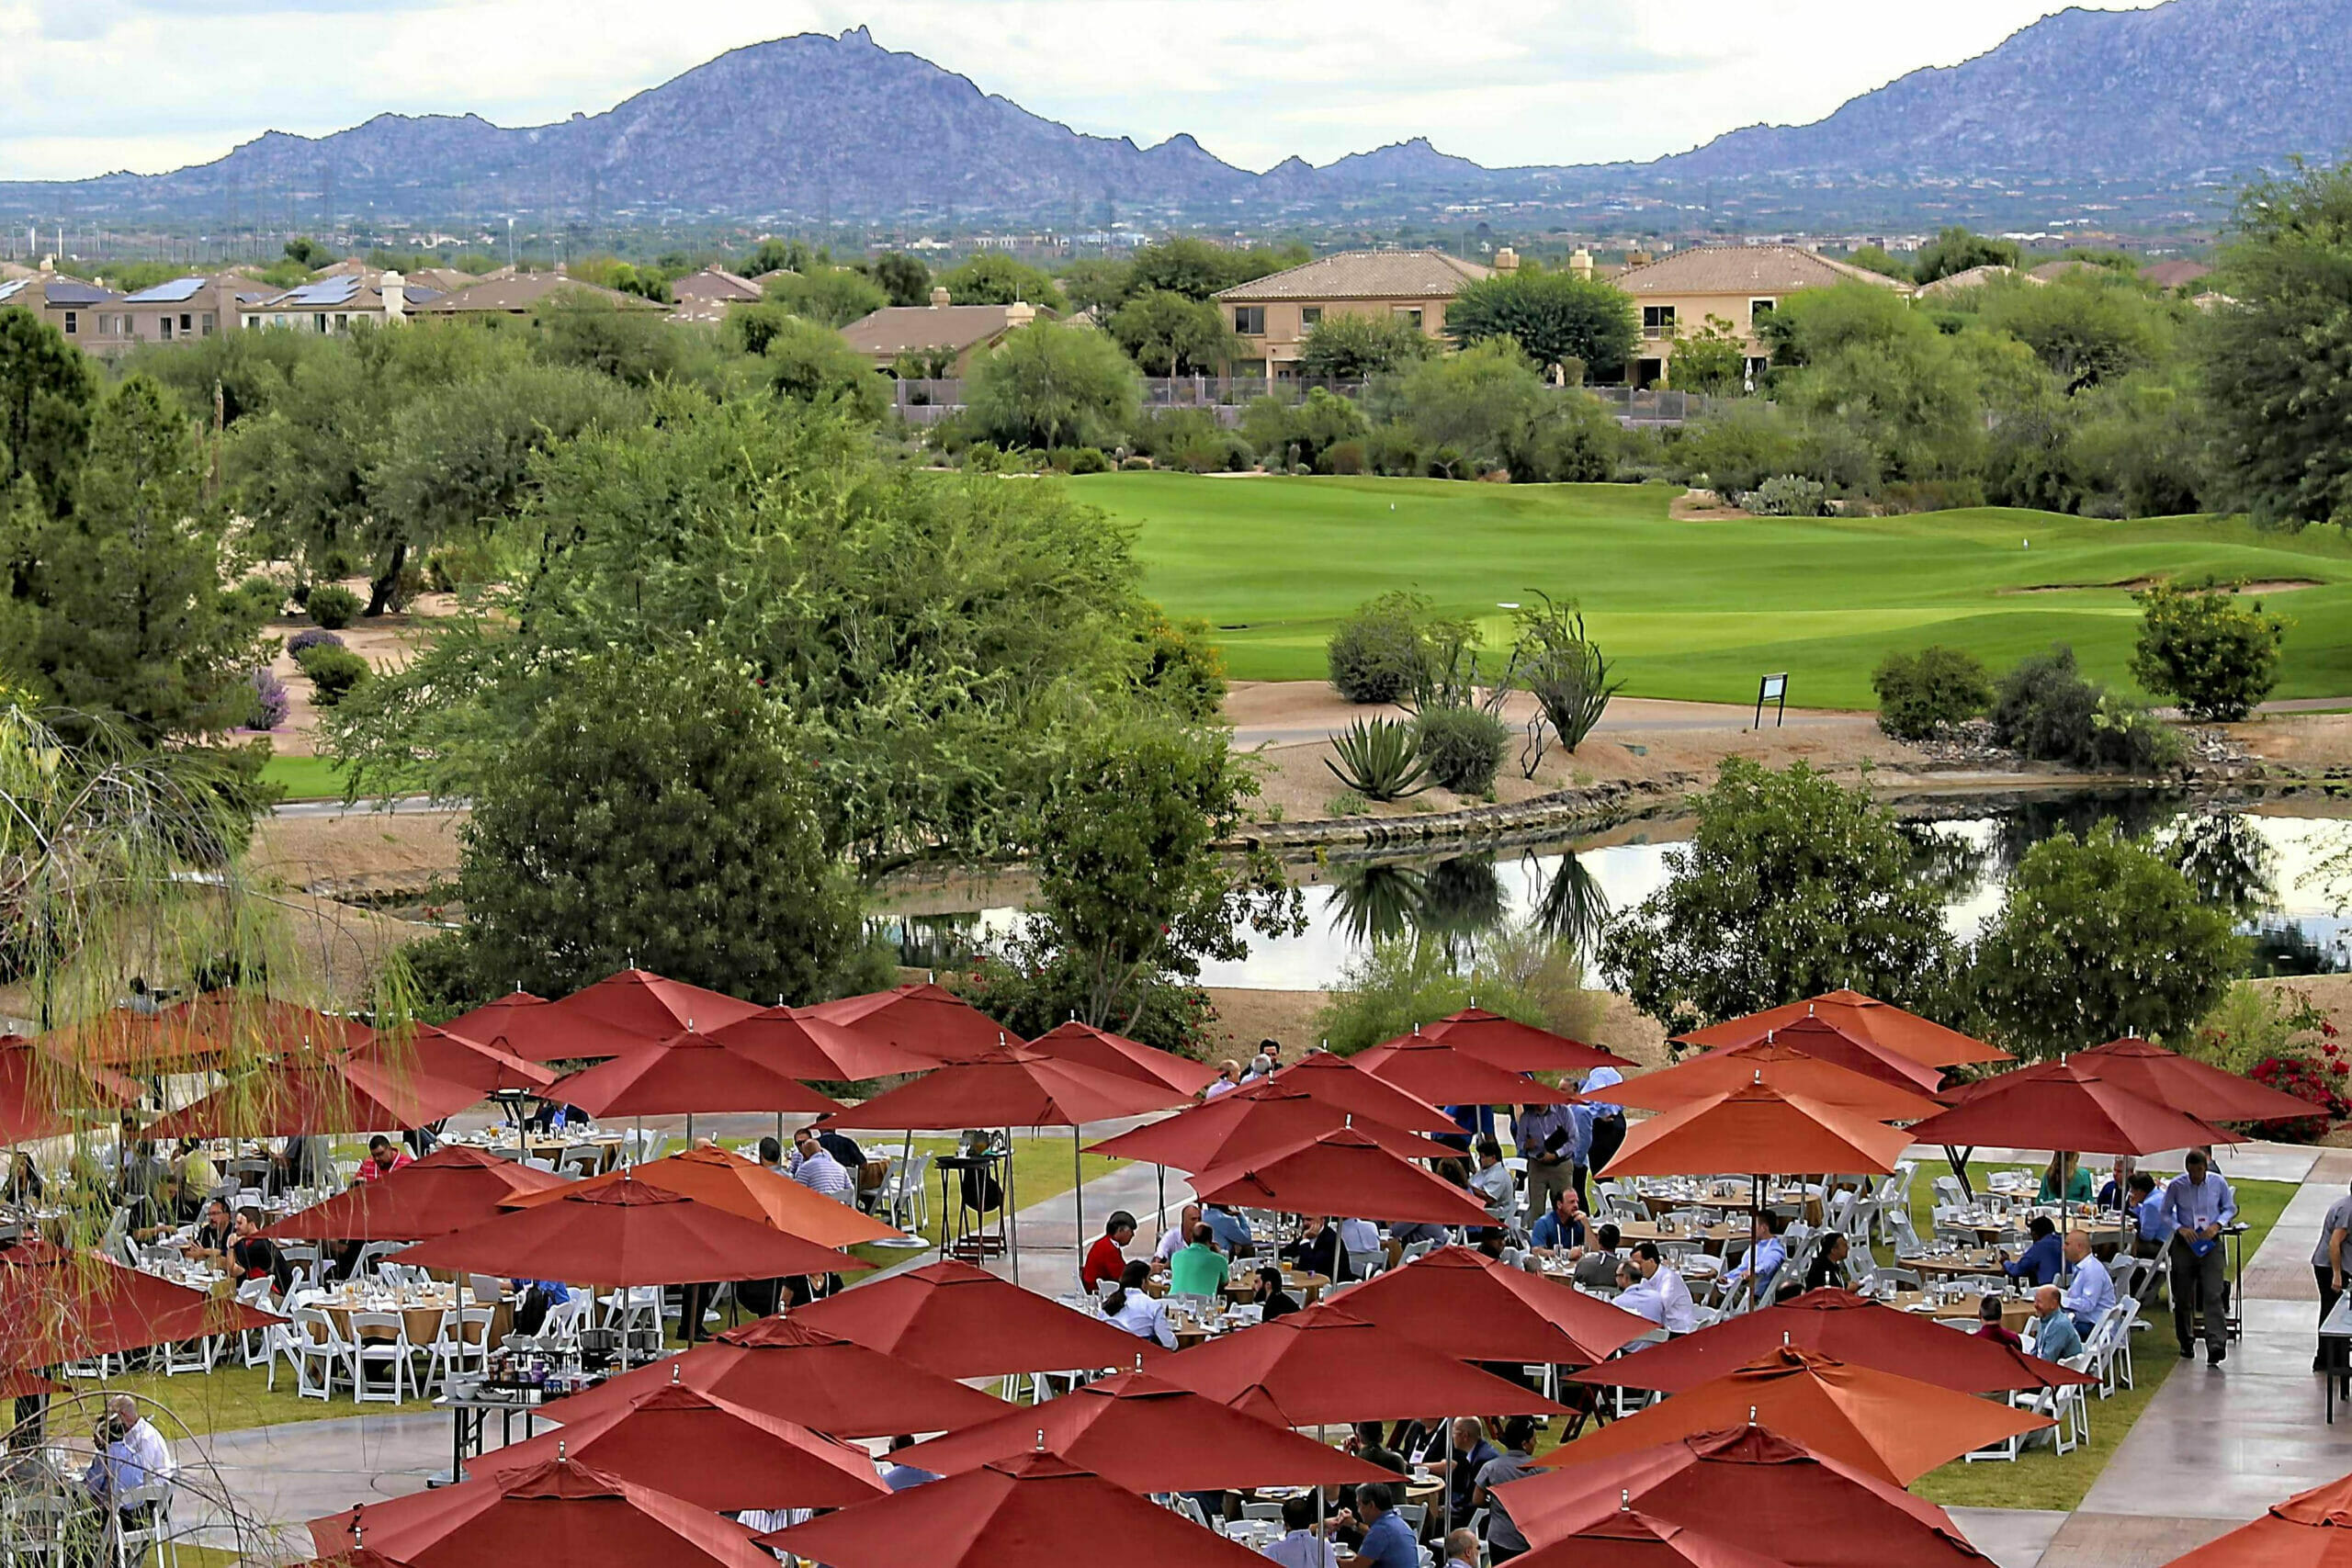 View of attendees having morning breakfast on the outside lawn of the JW Marriott Desert Ridge Resort